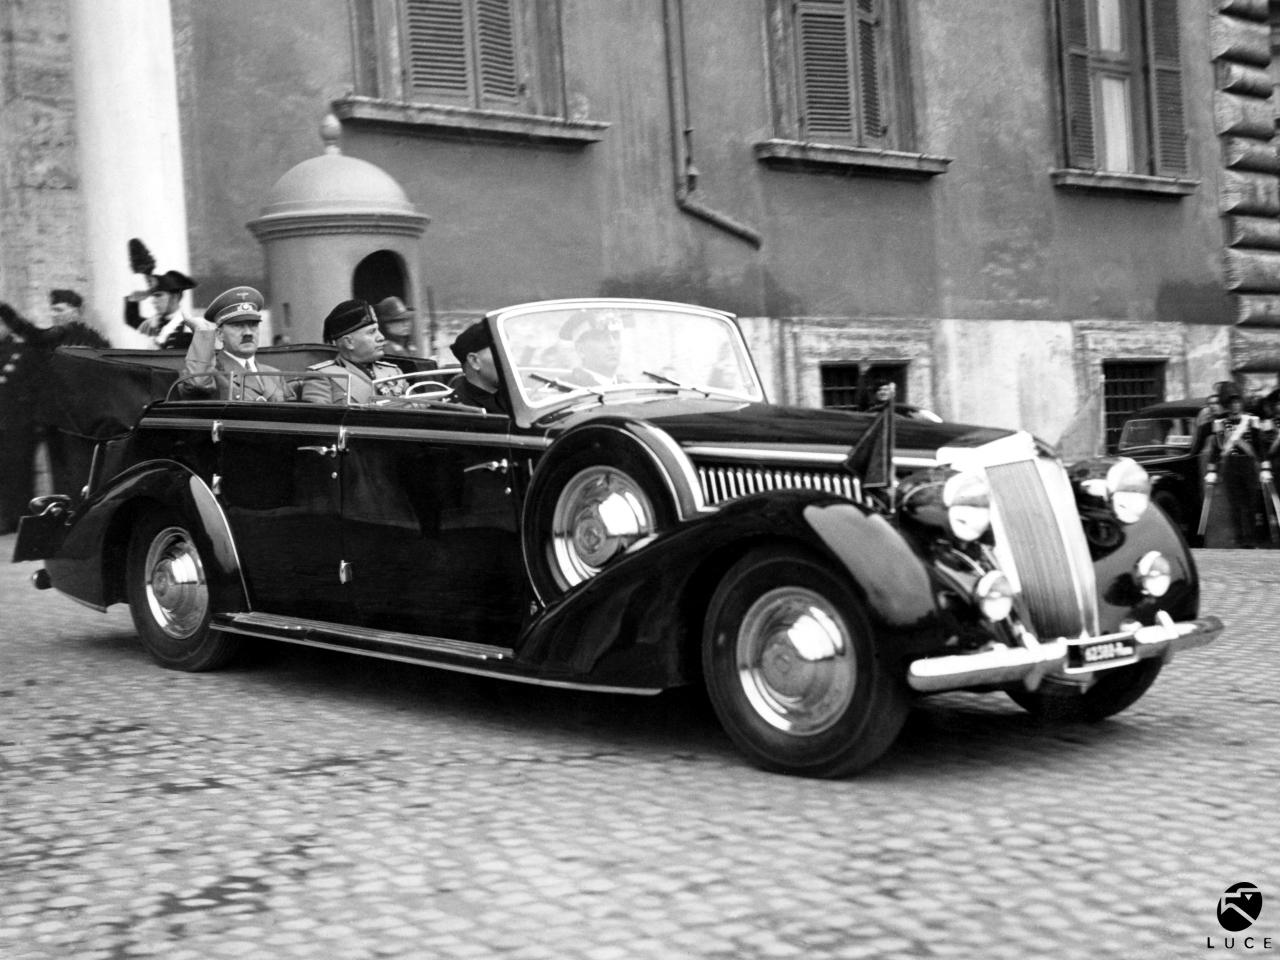 Hitler and Mussolini depart from the Quirinale, 4 May 1938